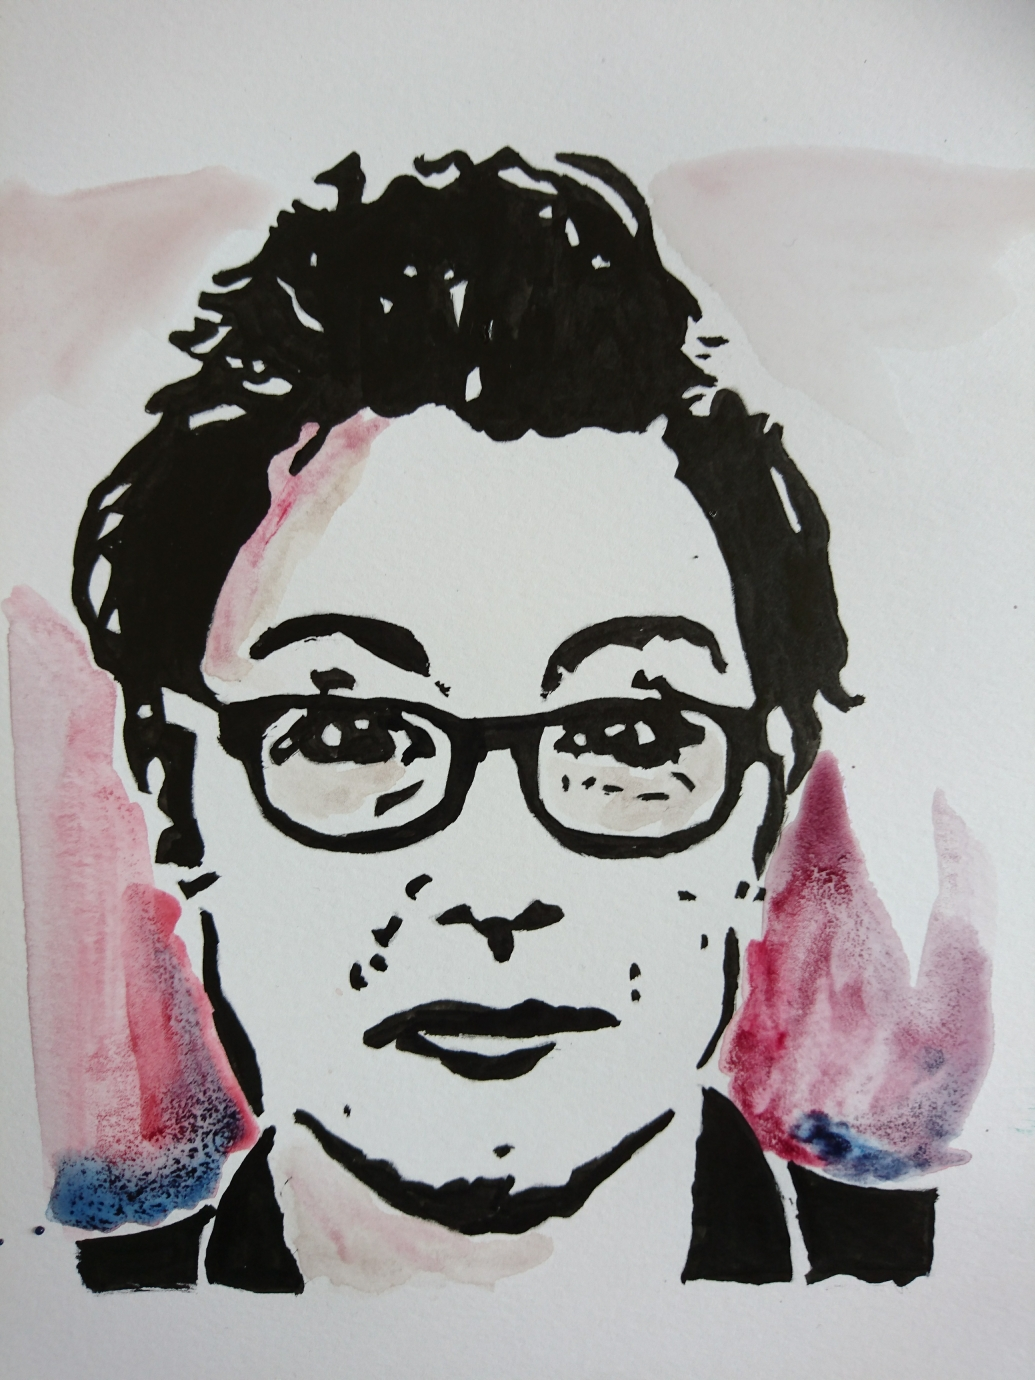 Sue Perkins, tv person (Great British Bake Off)